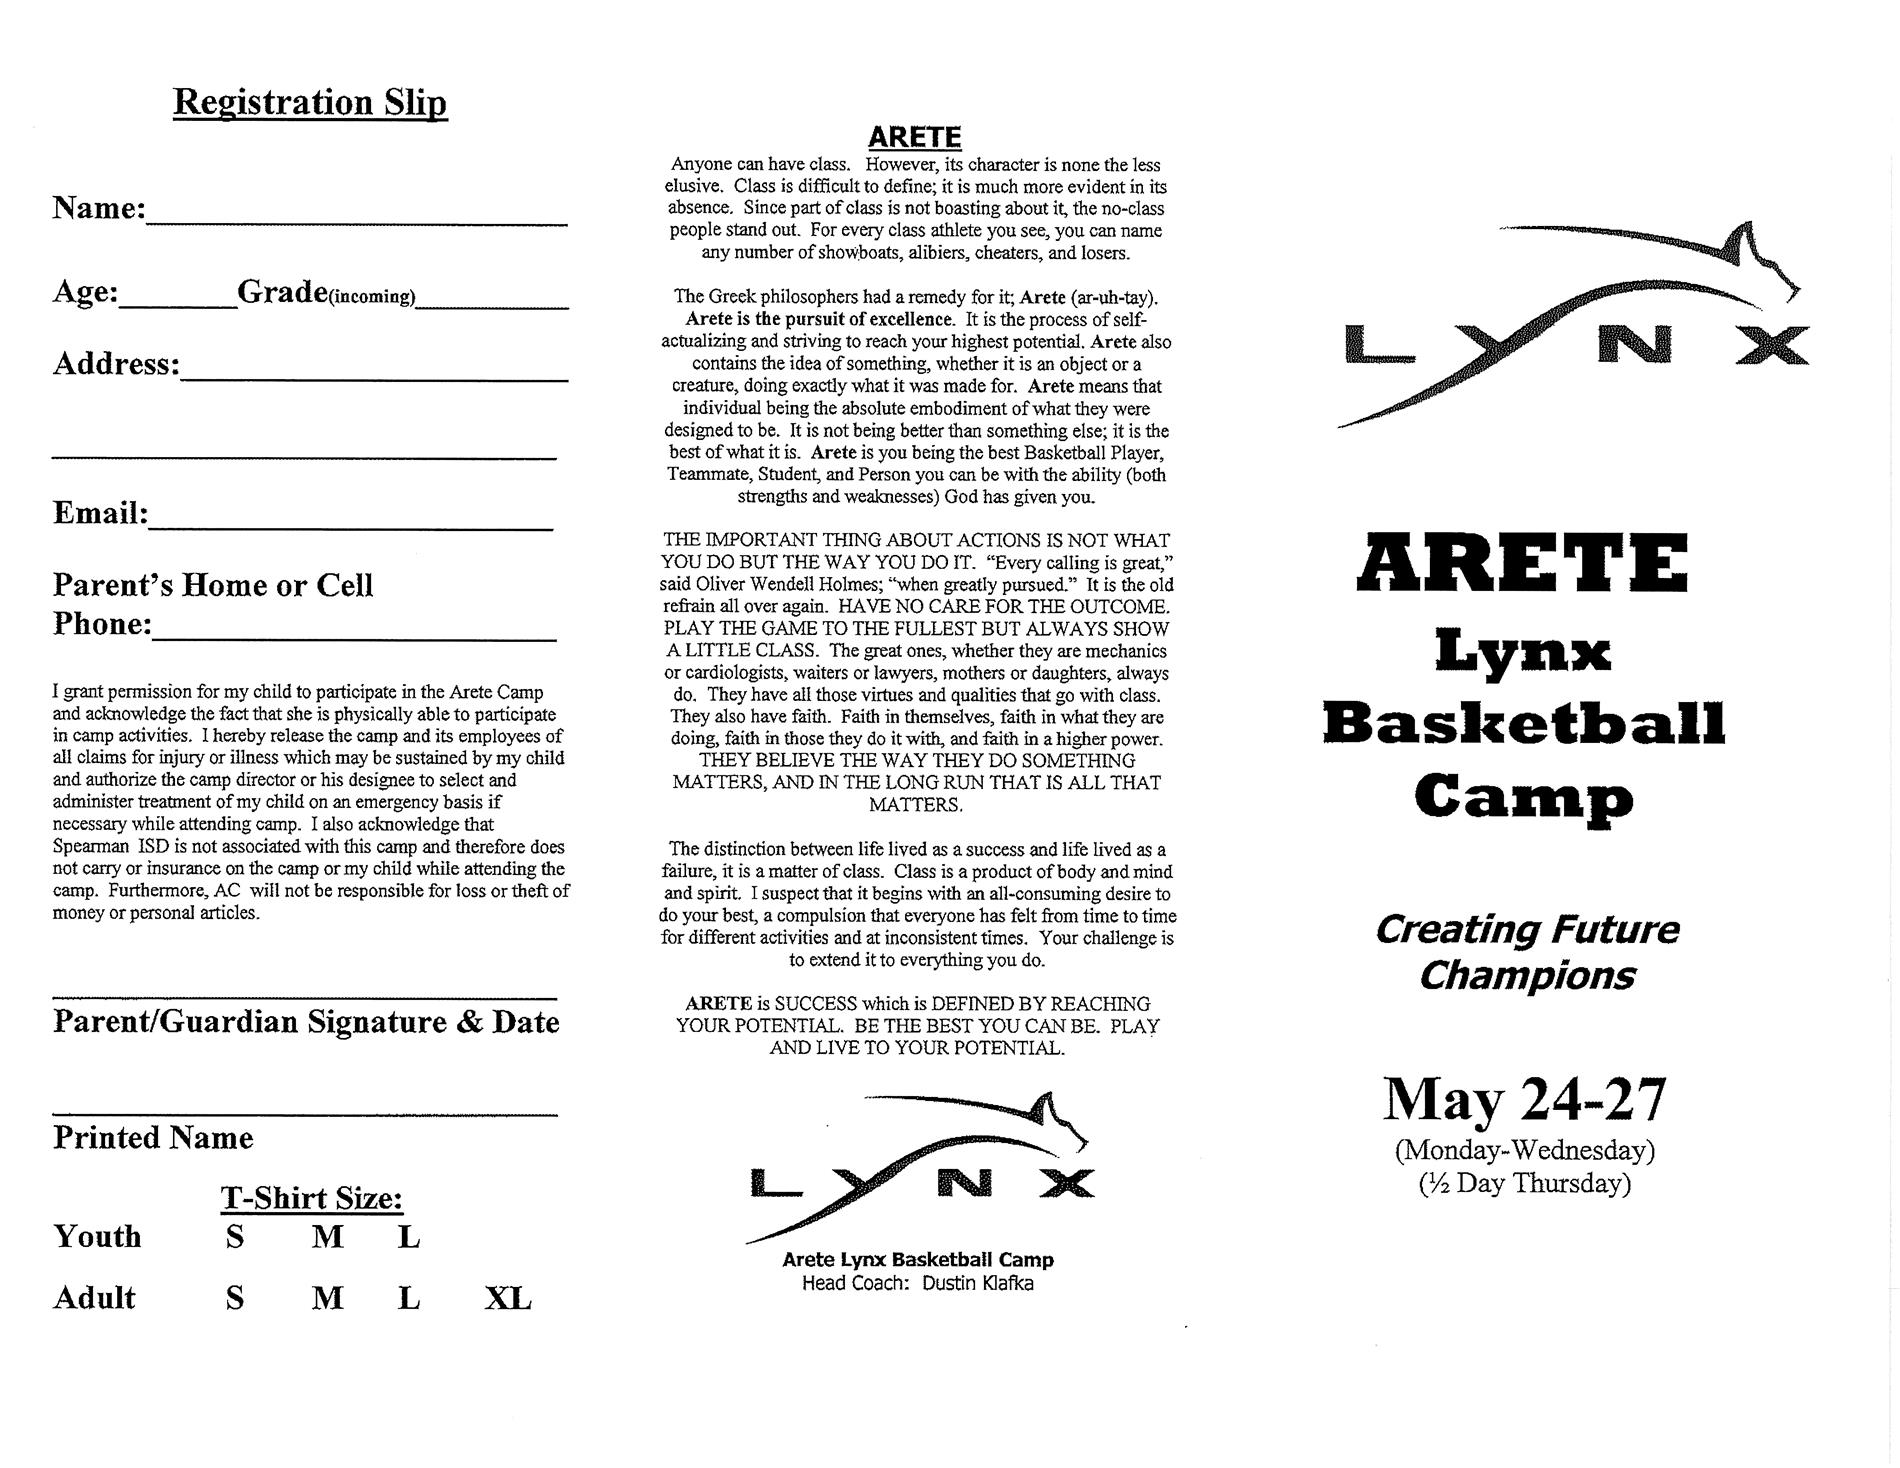 Camp info page 1